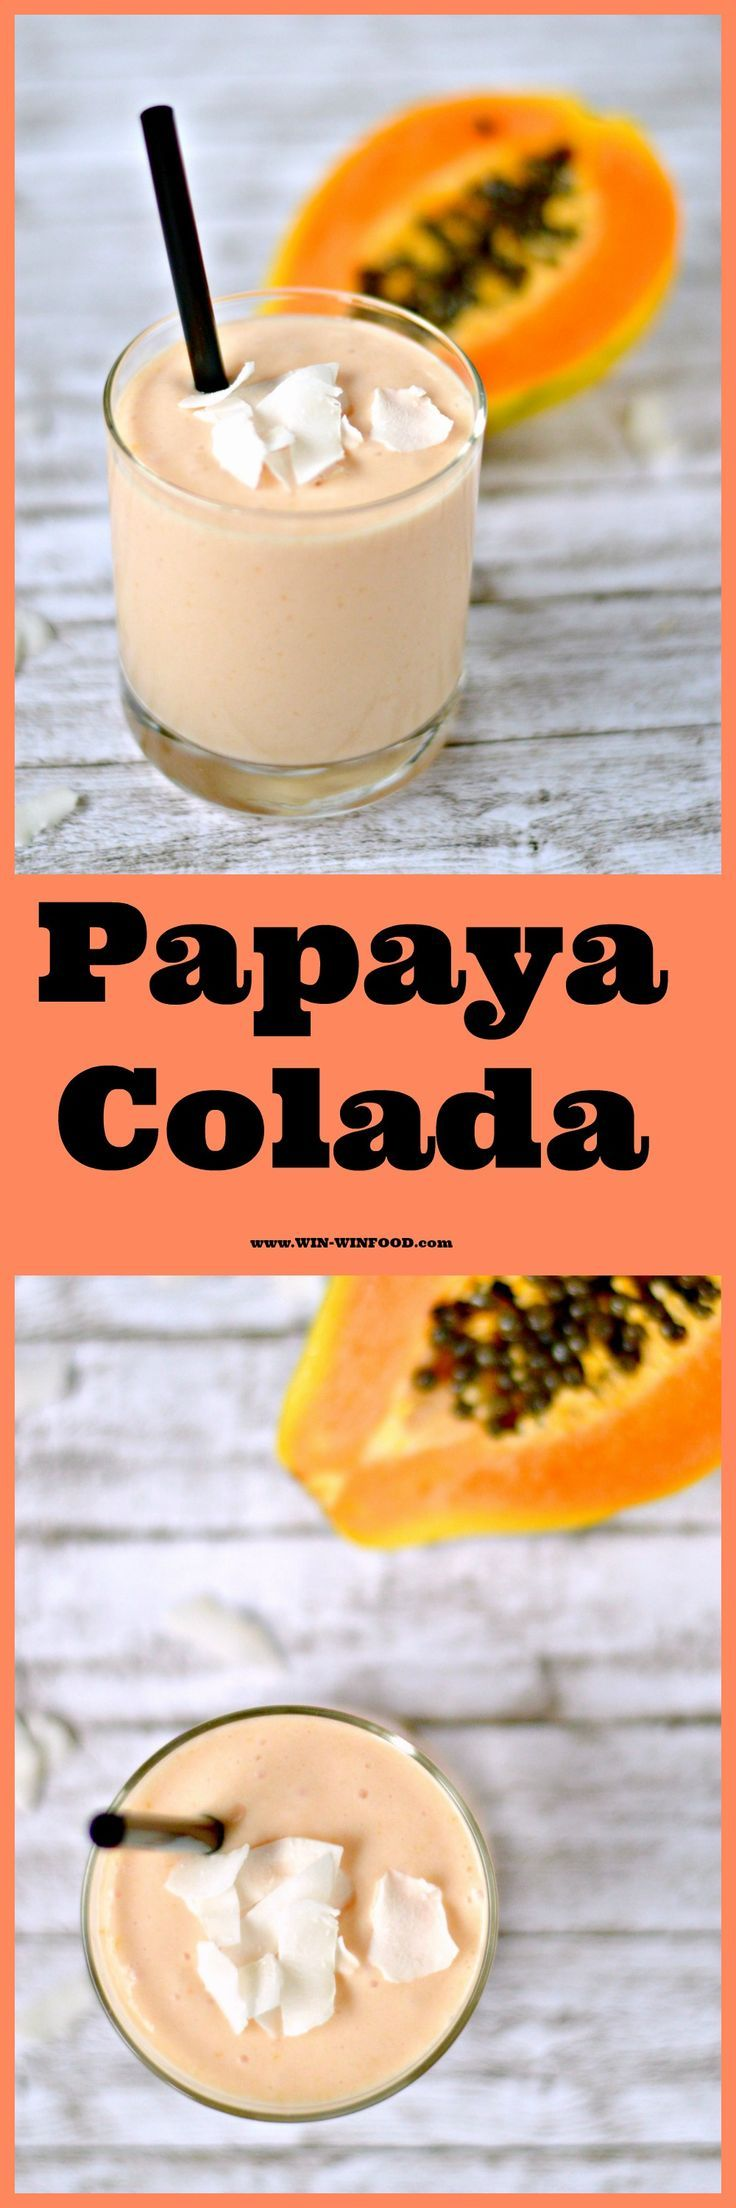 Papaya Colada | Extra thick, ice-cold and creamy papaya twist on pina colada